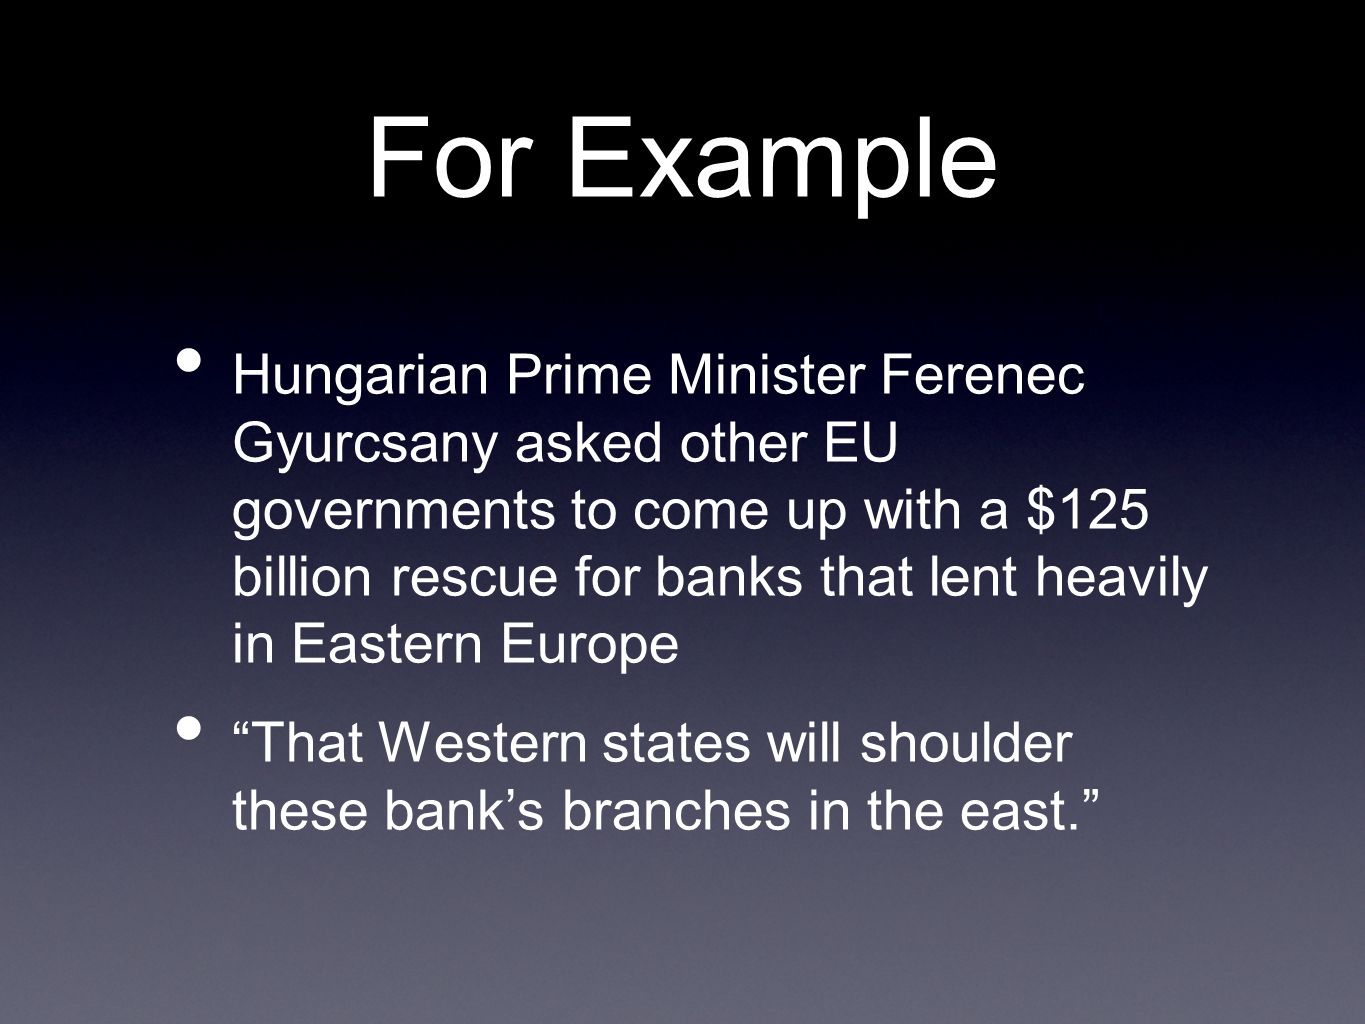 For Example Hungarian Prime Minister Ferenec Gyurcsany asked other EU governments to come up with a $125 billion rescue for banks that lent heavily in Eastern Europe That Western states will shoulder these banks branches in the east.